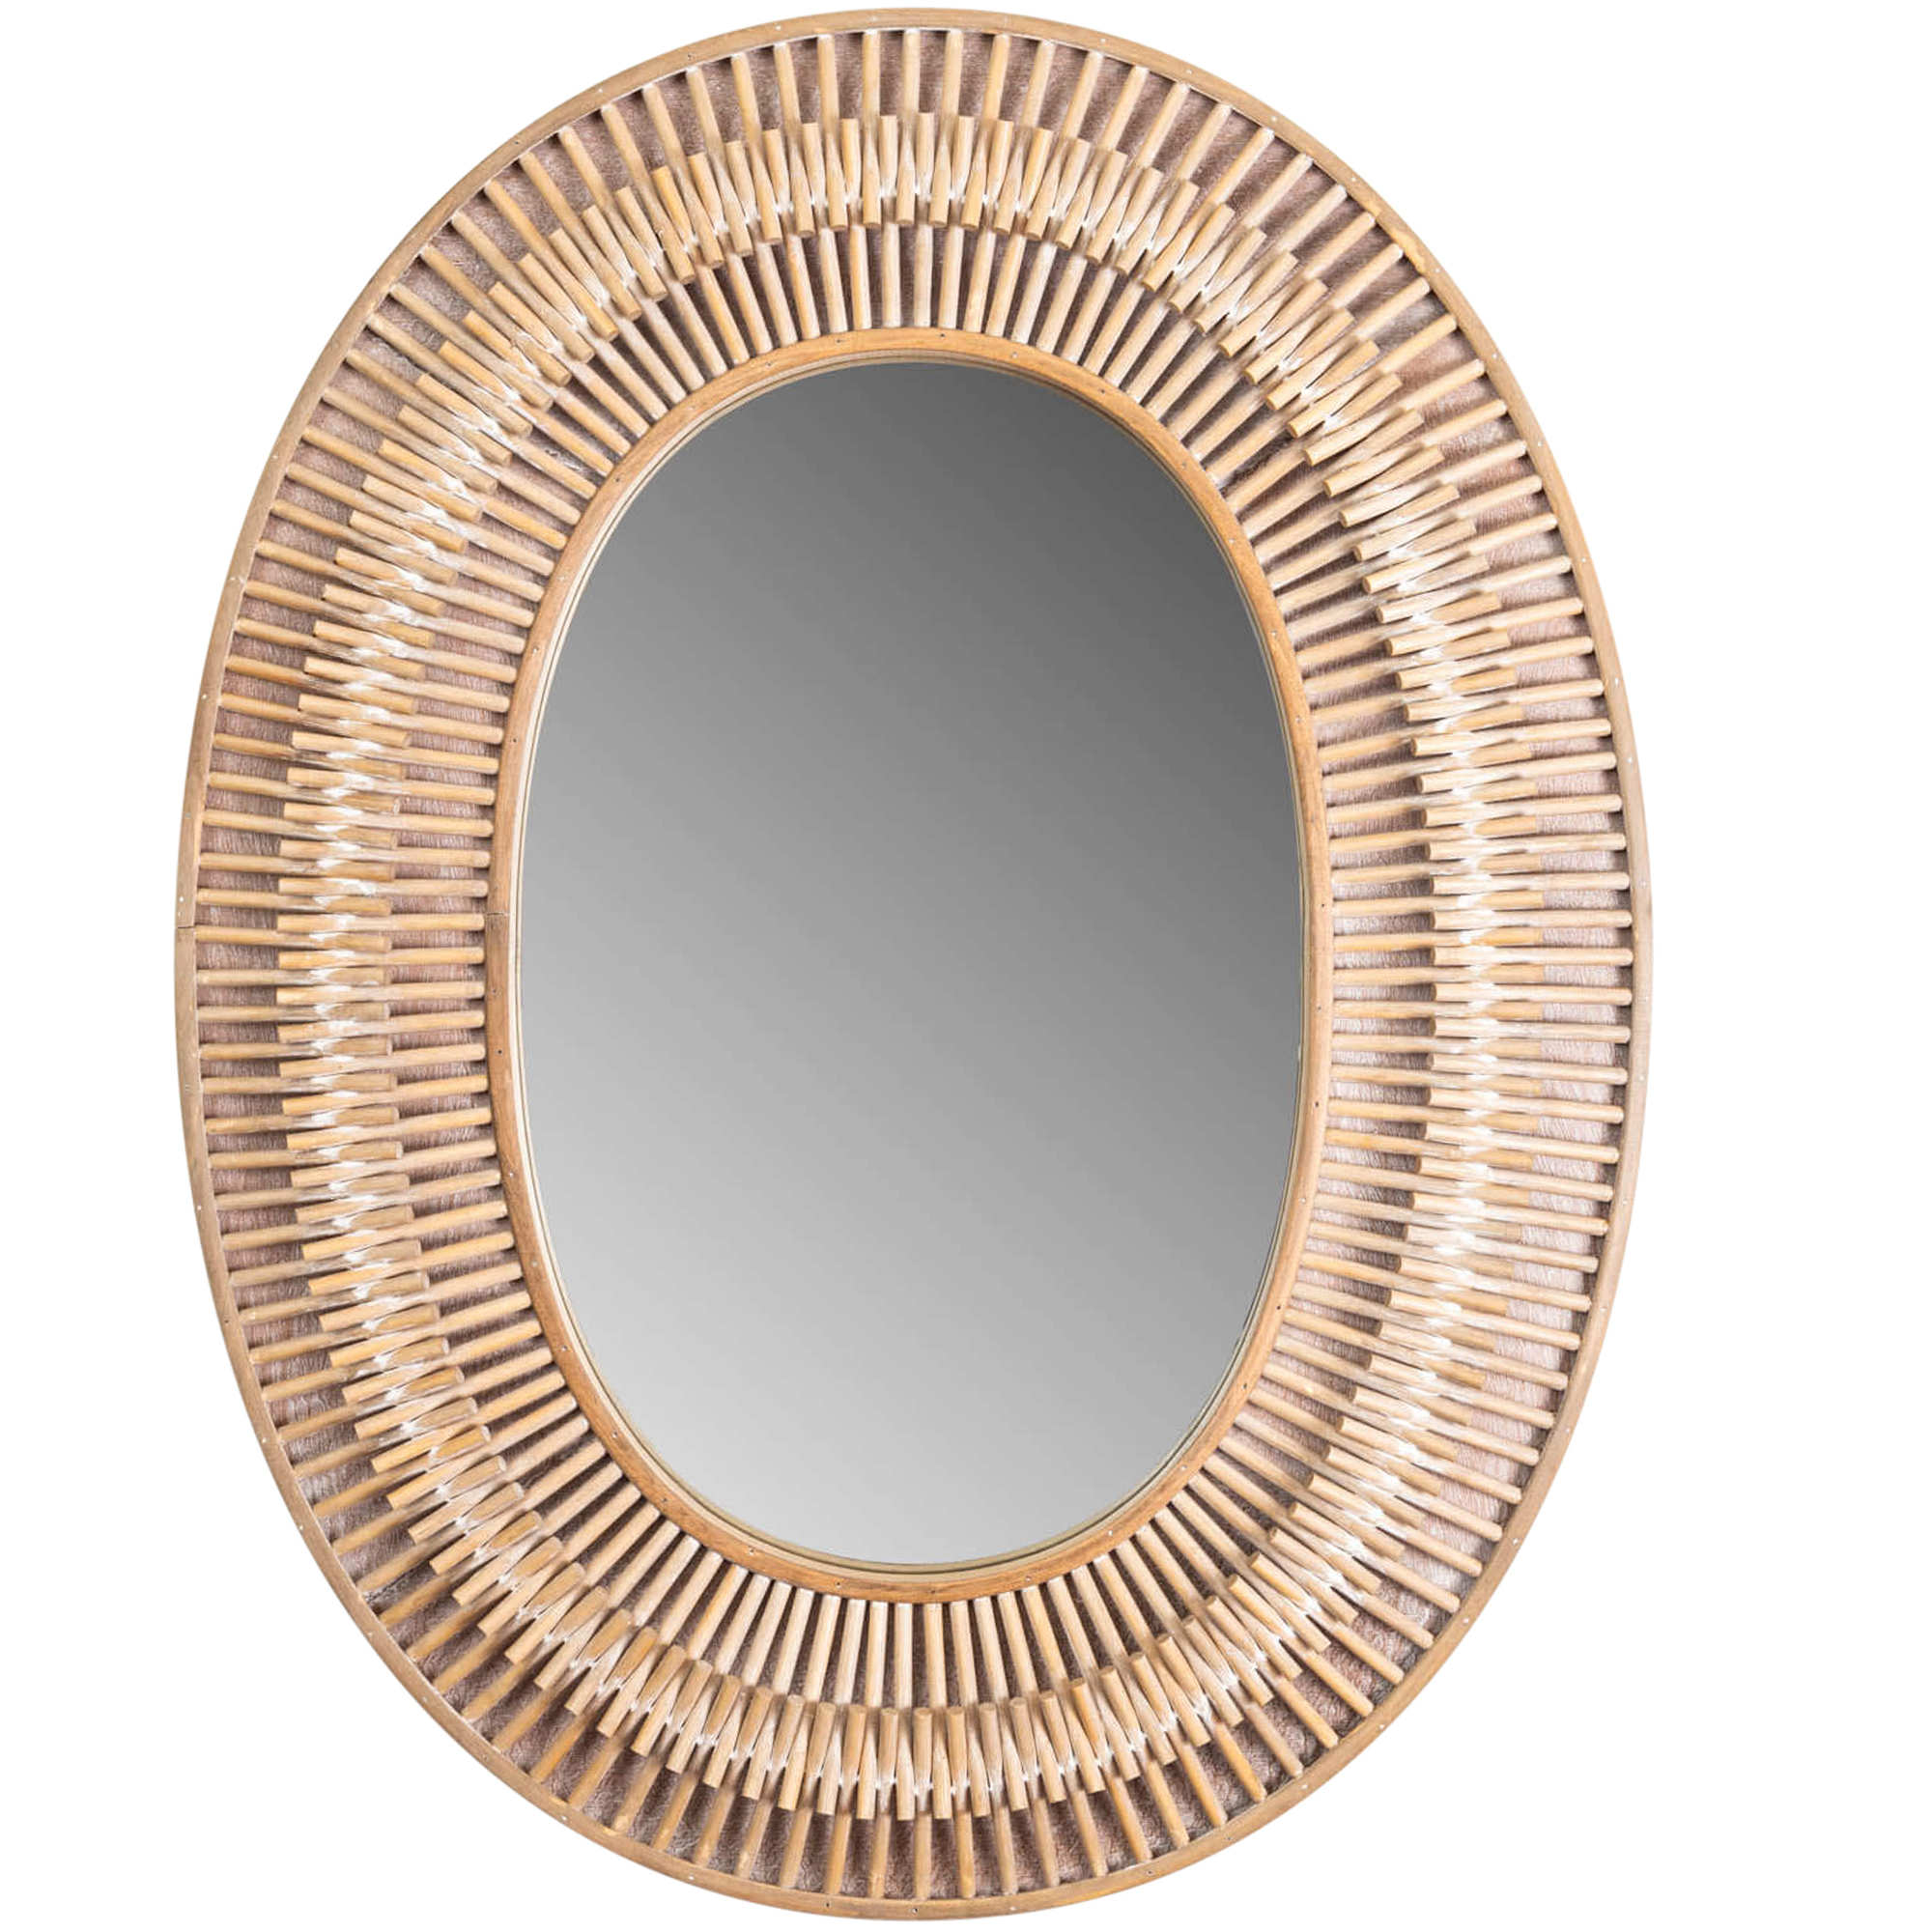 Rattan Wall Mirrors In Most Popular Natural Silas Oval Rattan Wall Mirror (View 9 of 20)